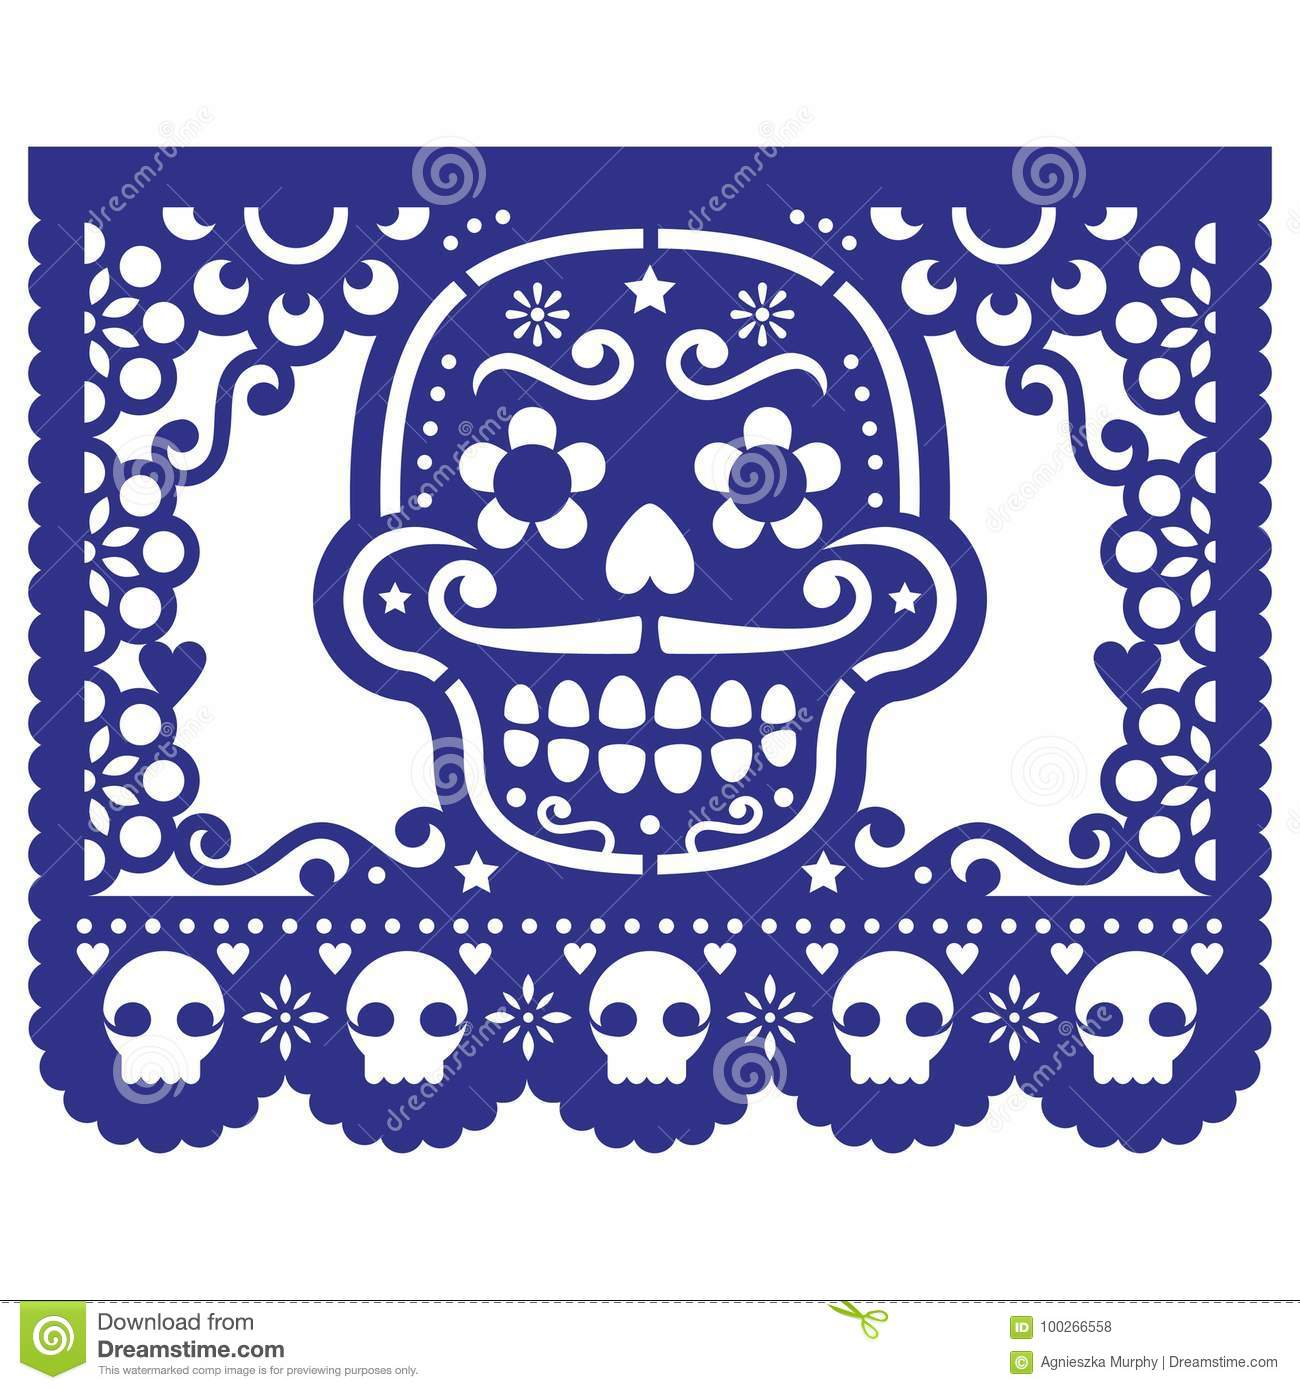 mexican day of the dead essay Day of the dead essays: over 180,000 day of the dead essays, day of the dead term papers, day of the dead research paper, book reports 184 990 essays, term and research papers available for unlimited access.